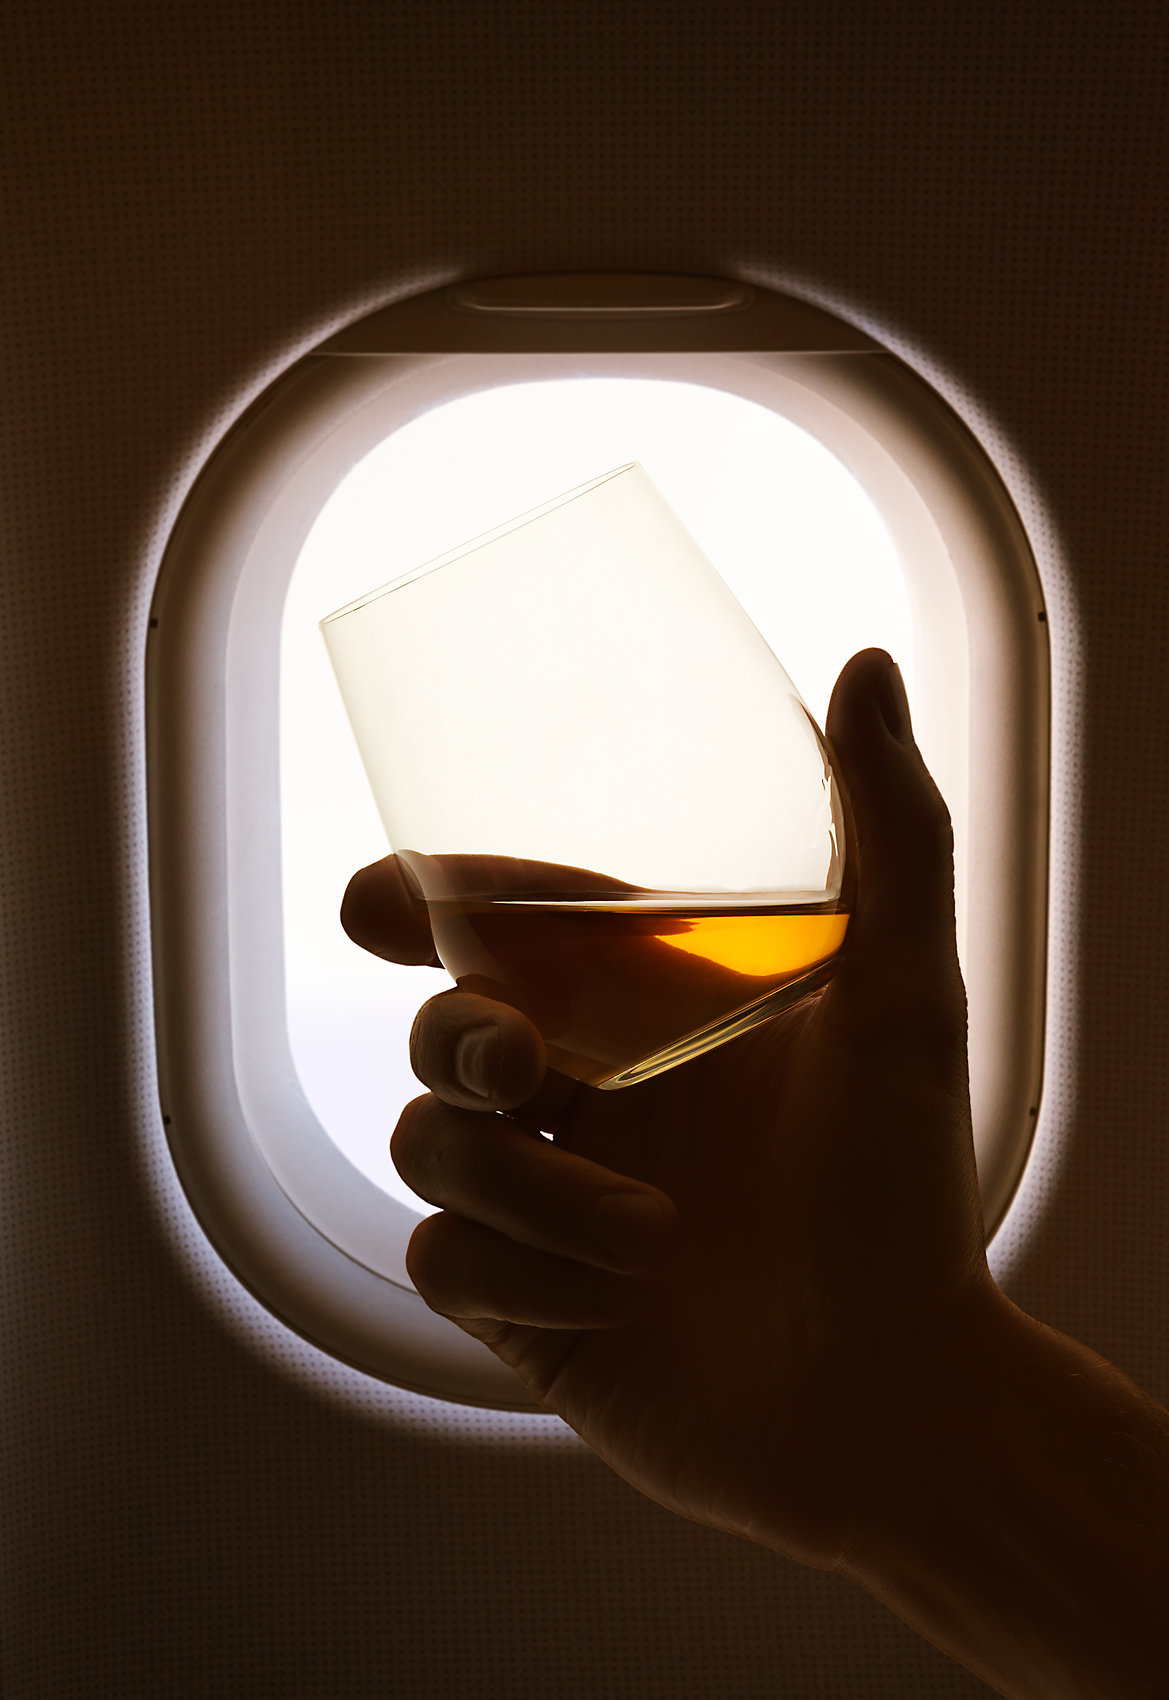 Nick_Rees-AIRPLANE_DRINKS-2